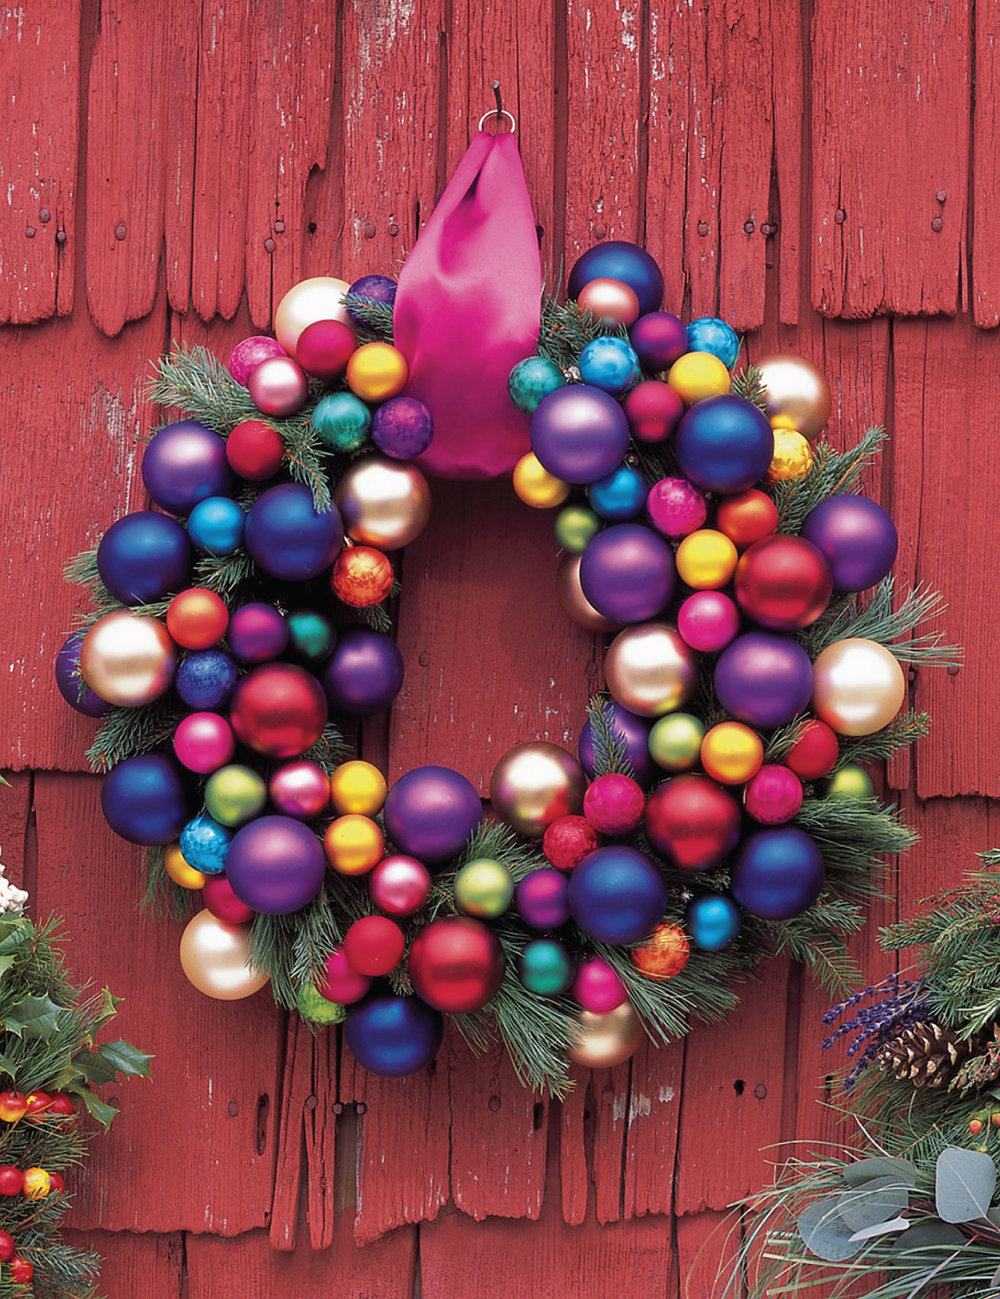 Good Housekeeping presented this colorful wreath recently.  I like the sprigs of greenery.